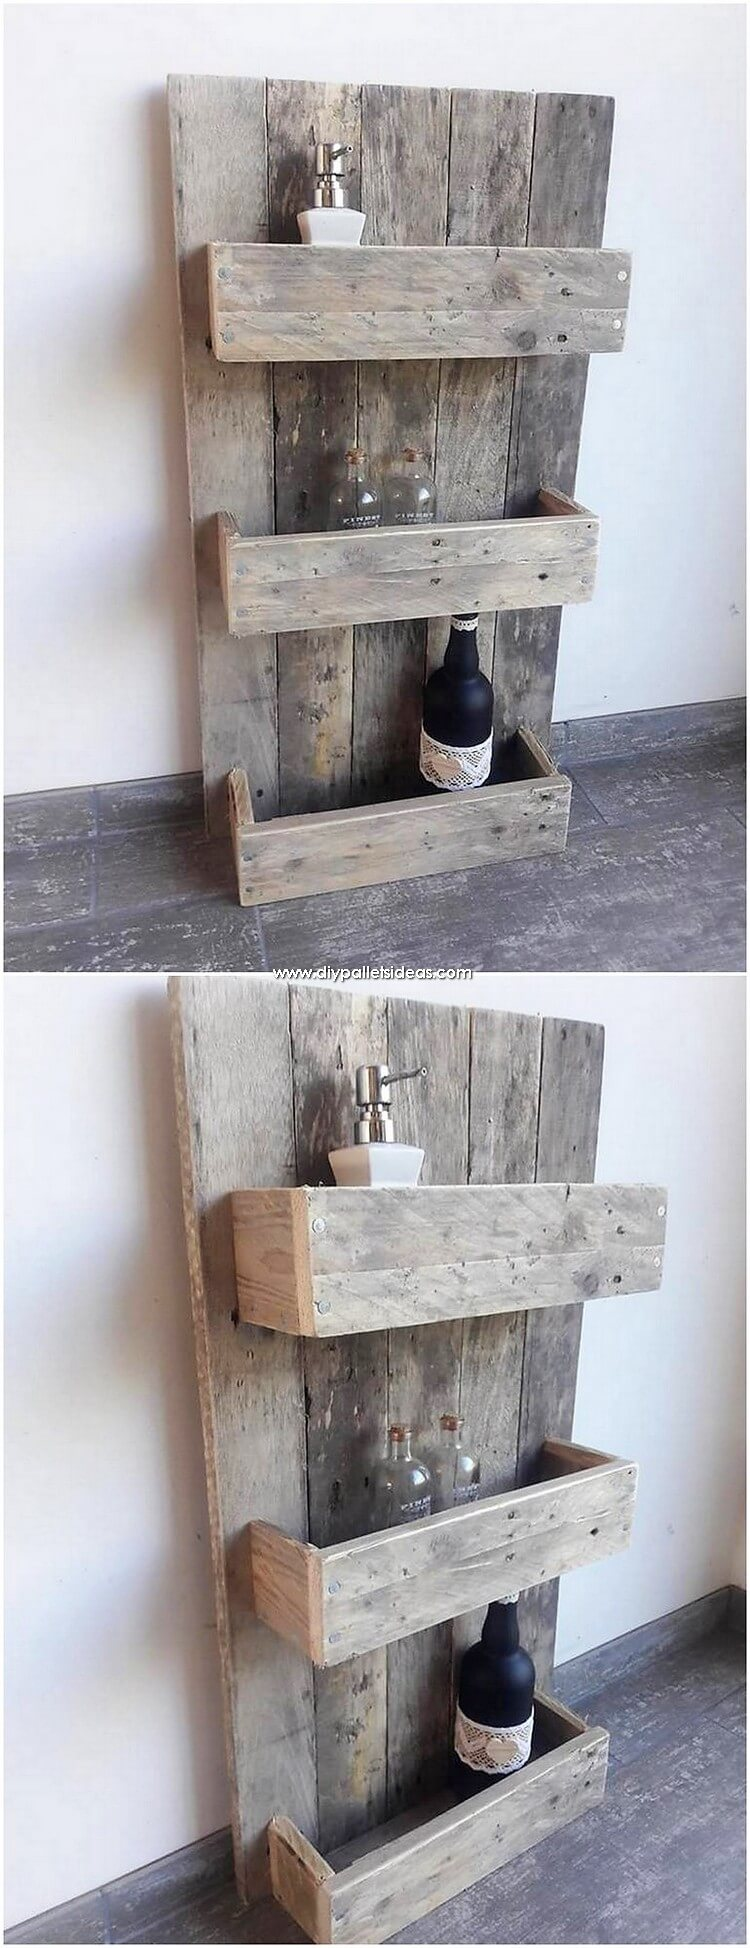 Pallet Kitchen Spice Rack or Shelf